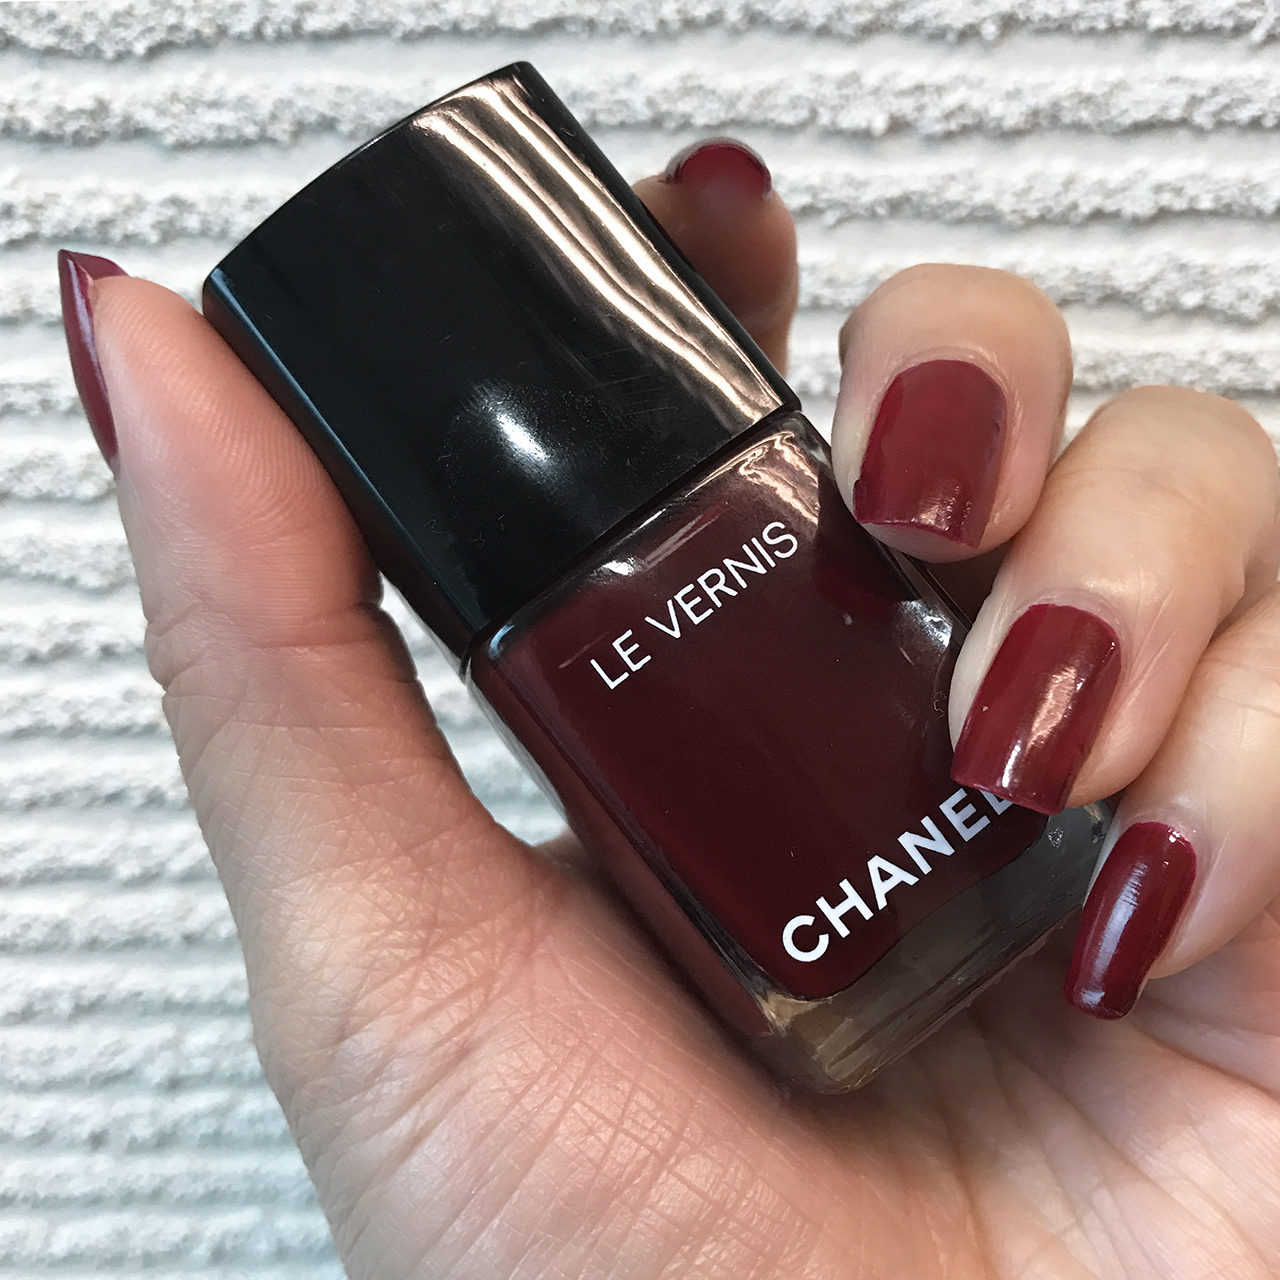 Chanel Le Vernis Emblematique